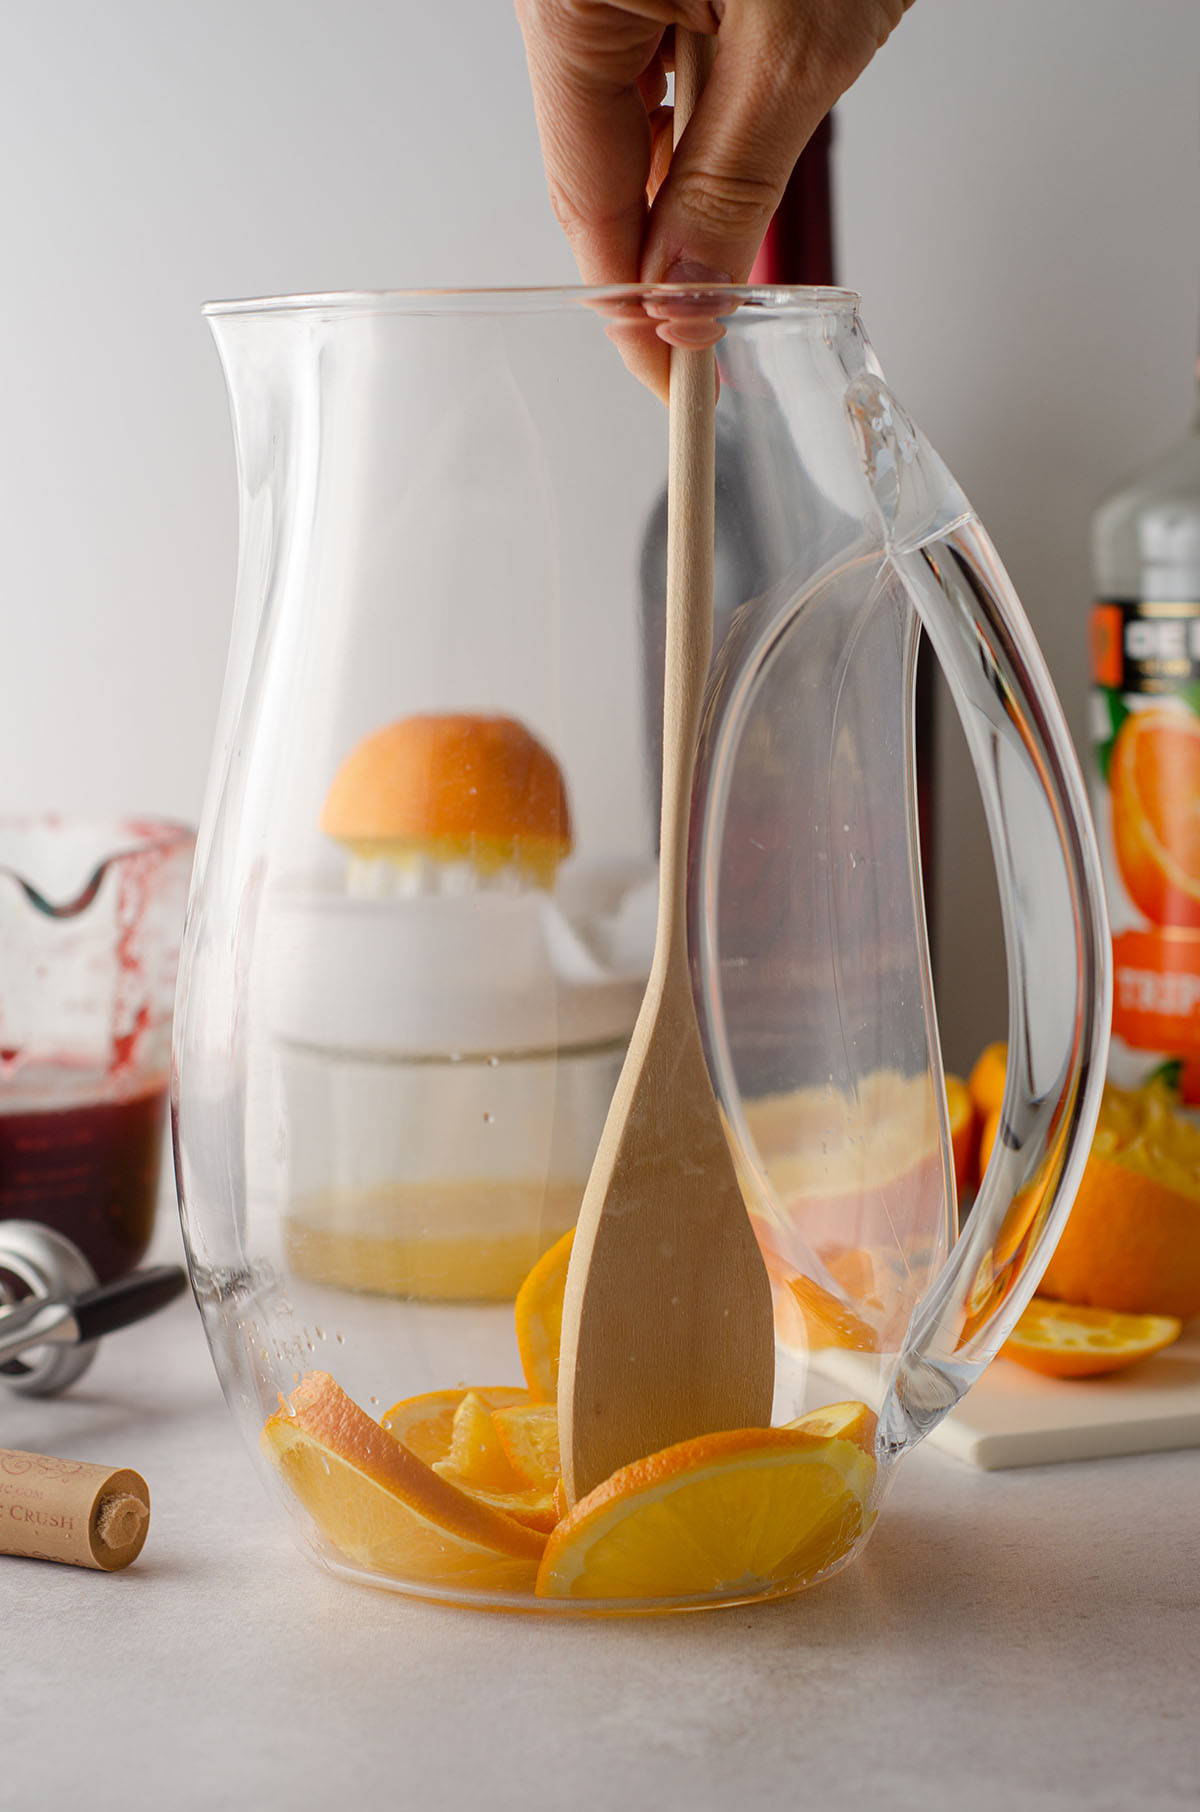 muddling oranges in a pitcher with a wooden spoon